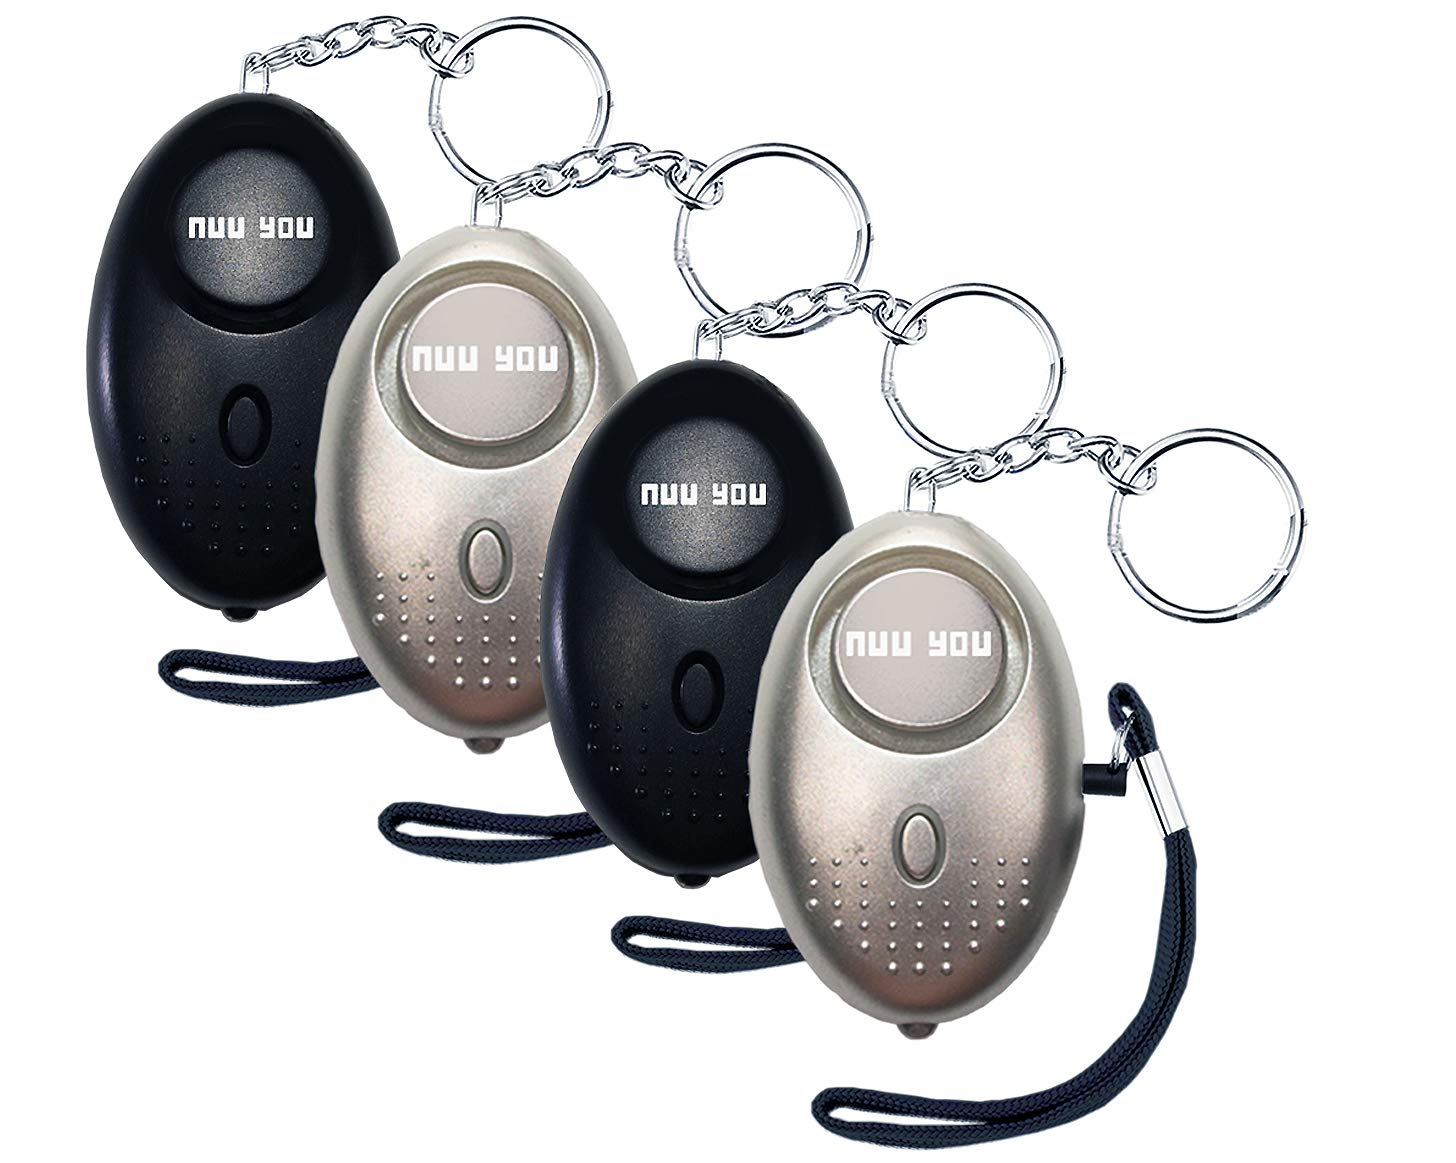 Personal Alarms for woman siren 140 DB with LED light (4 PACK),nuu you small Emergency Safety Sound Alarm Keychain for personal alarm Women/Kids/Girls/Elderly Self Defense Device Policeman Recommend by Nuu You